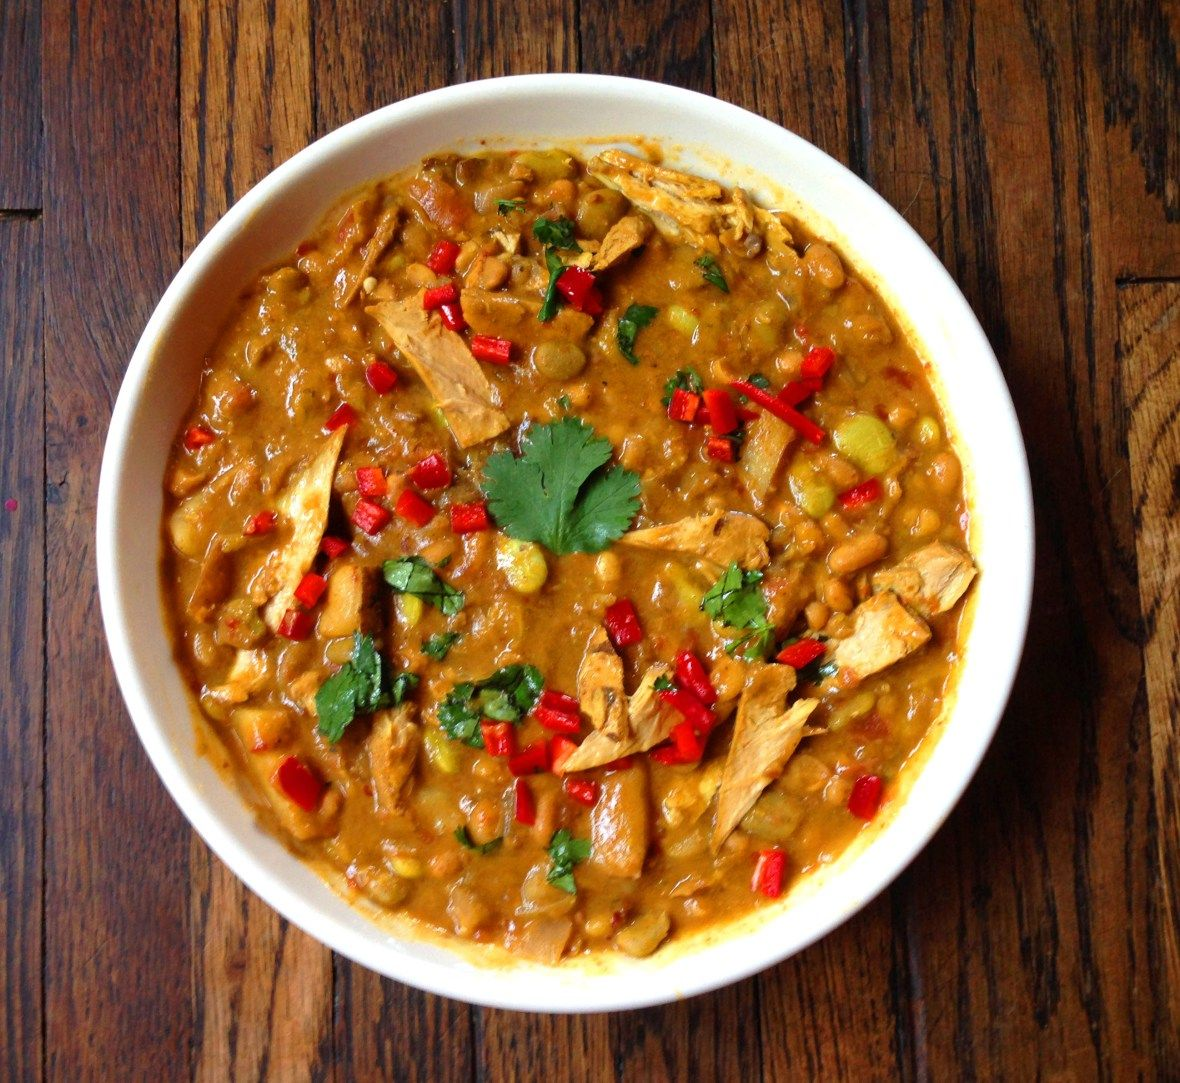 Spicy Pakistani Beyond Chicken & White Bean Stew